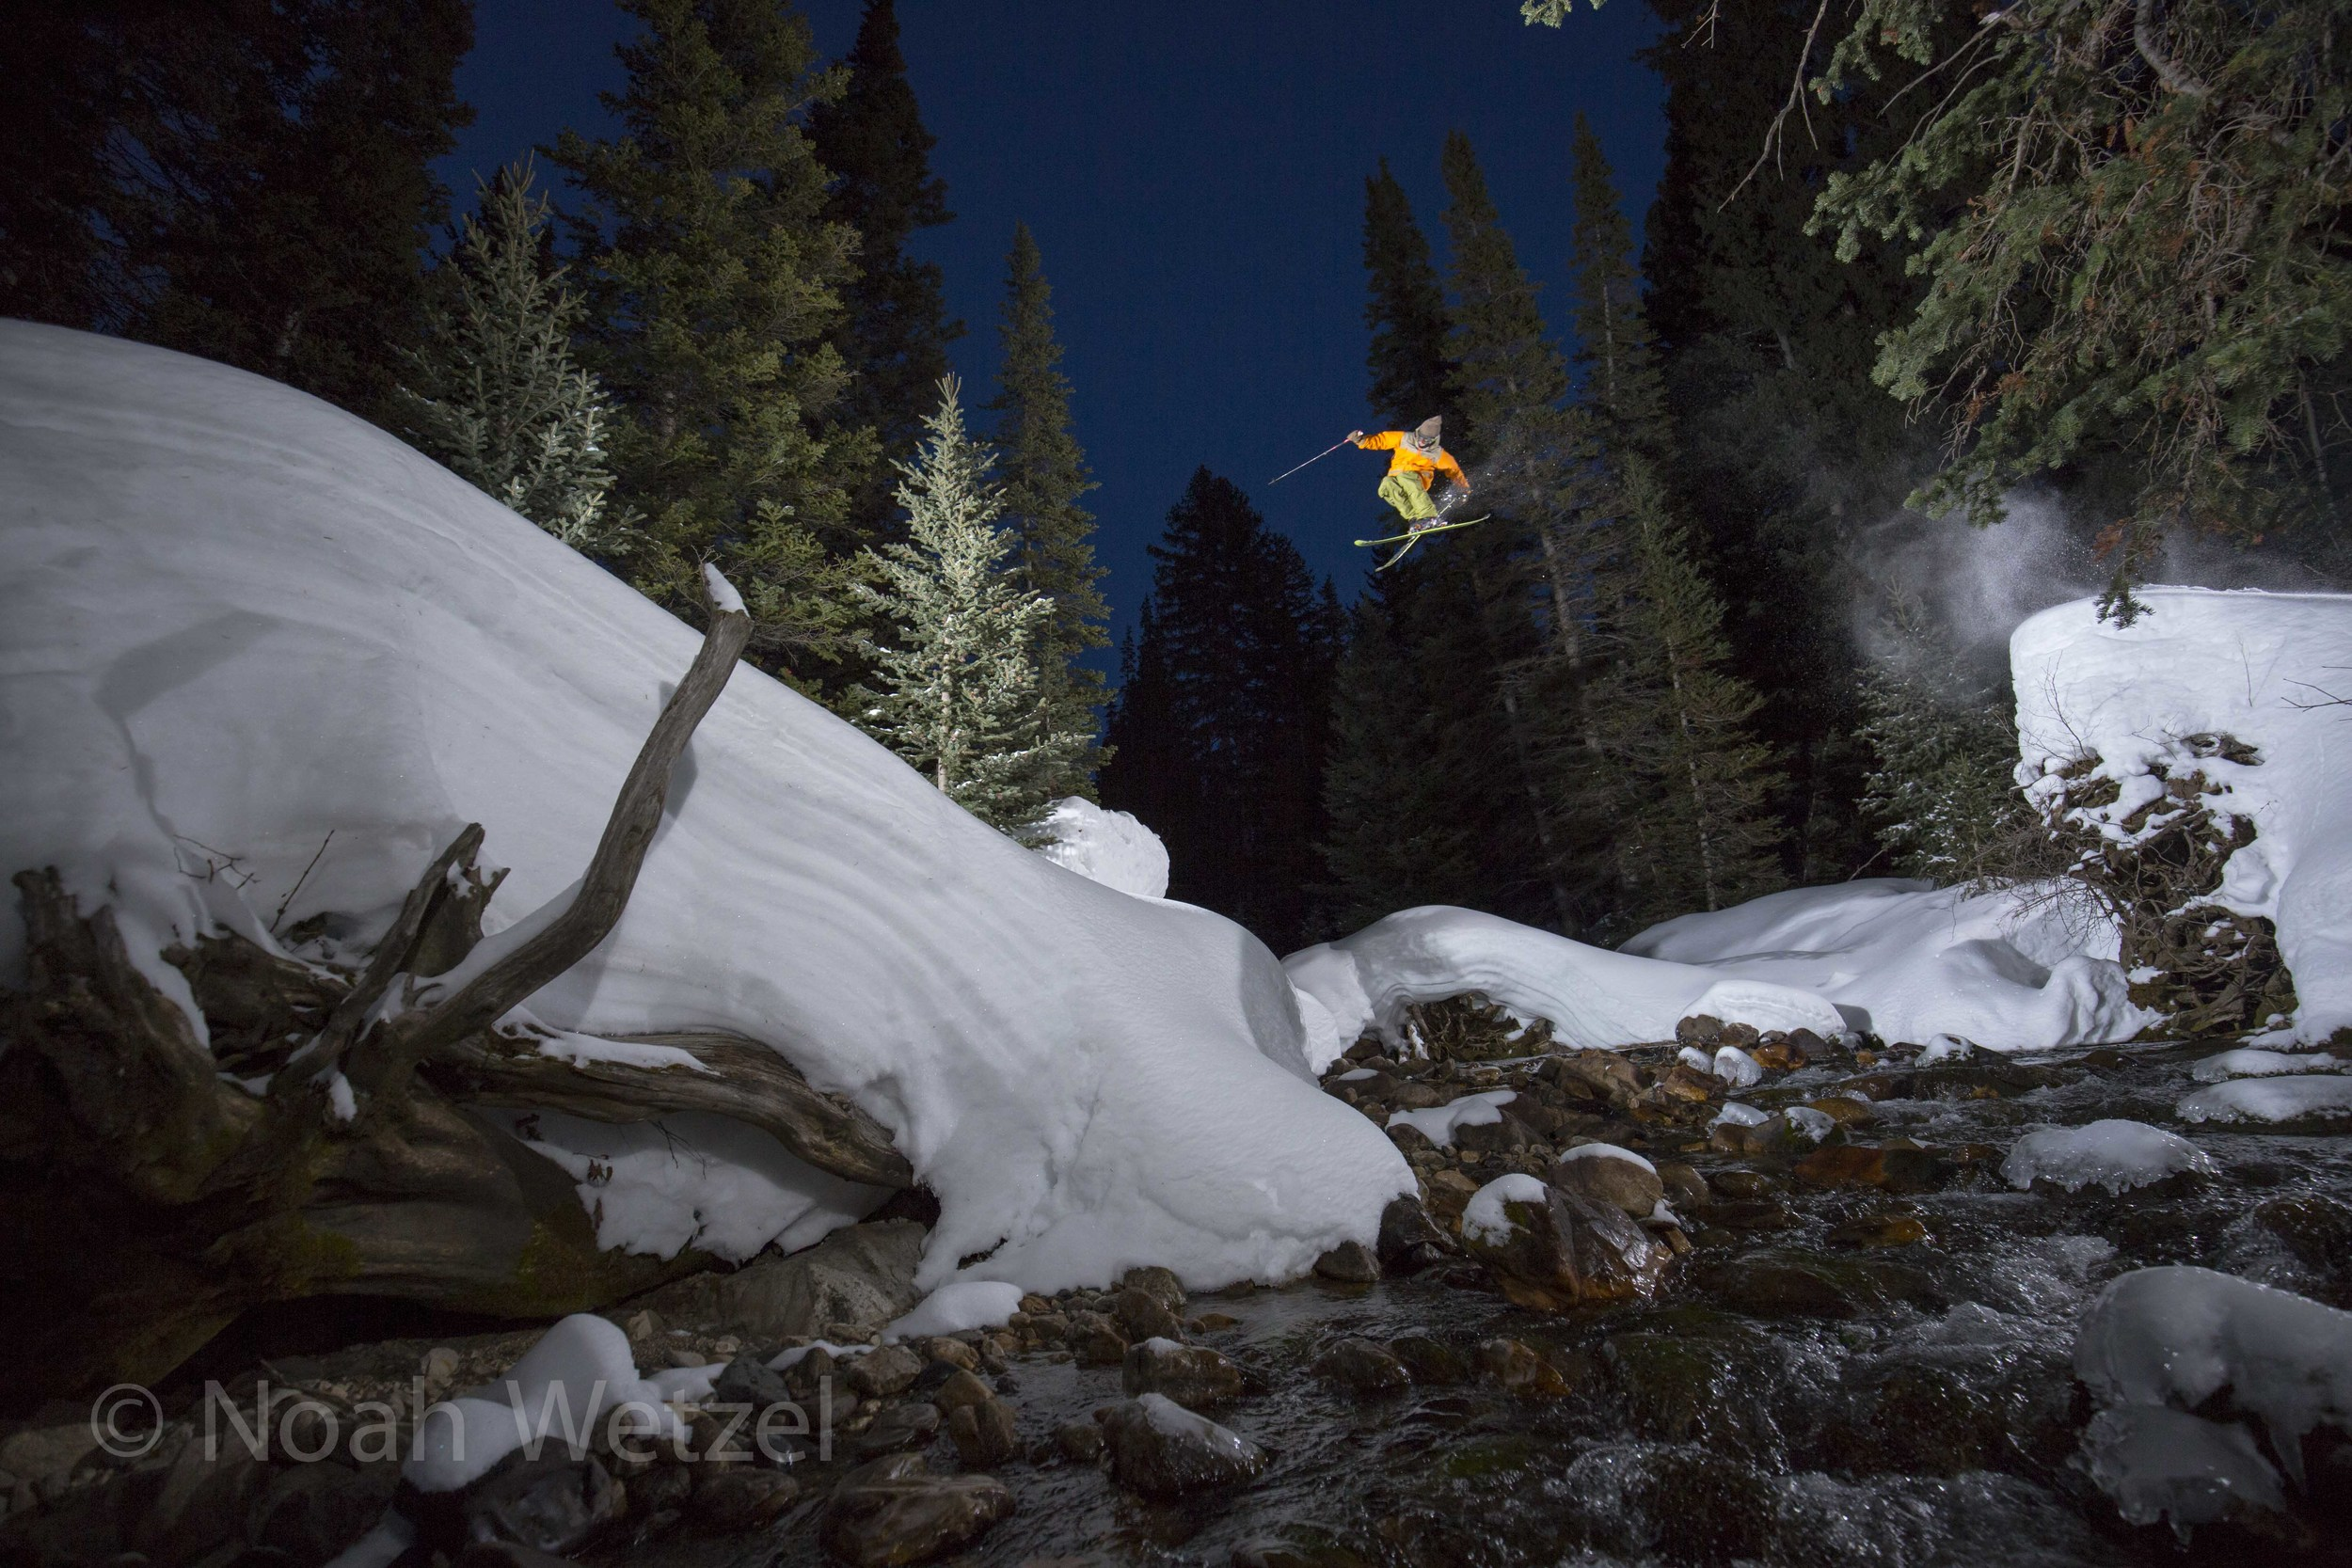 Willie Nelson floating a 180 tail grab over the Snowbird Resort creek gap. Day 2.